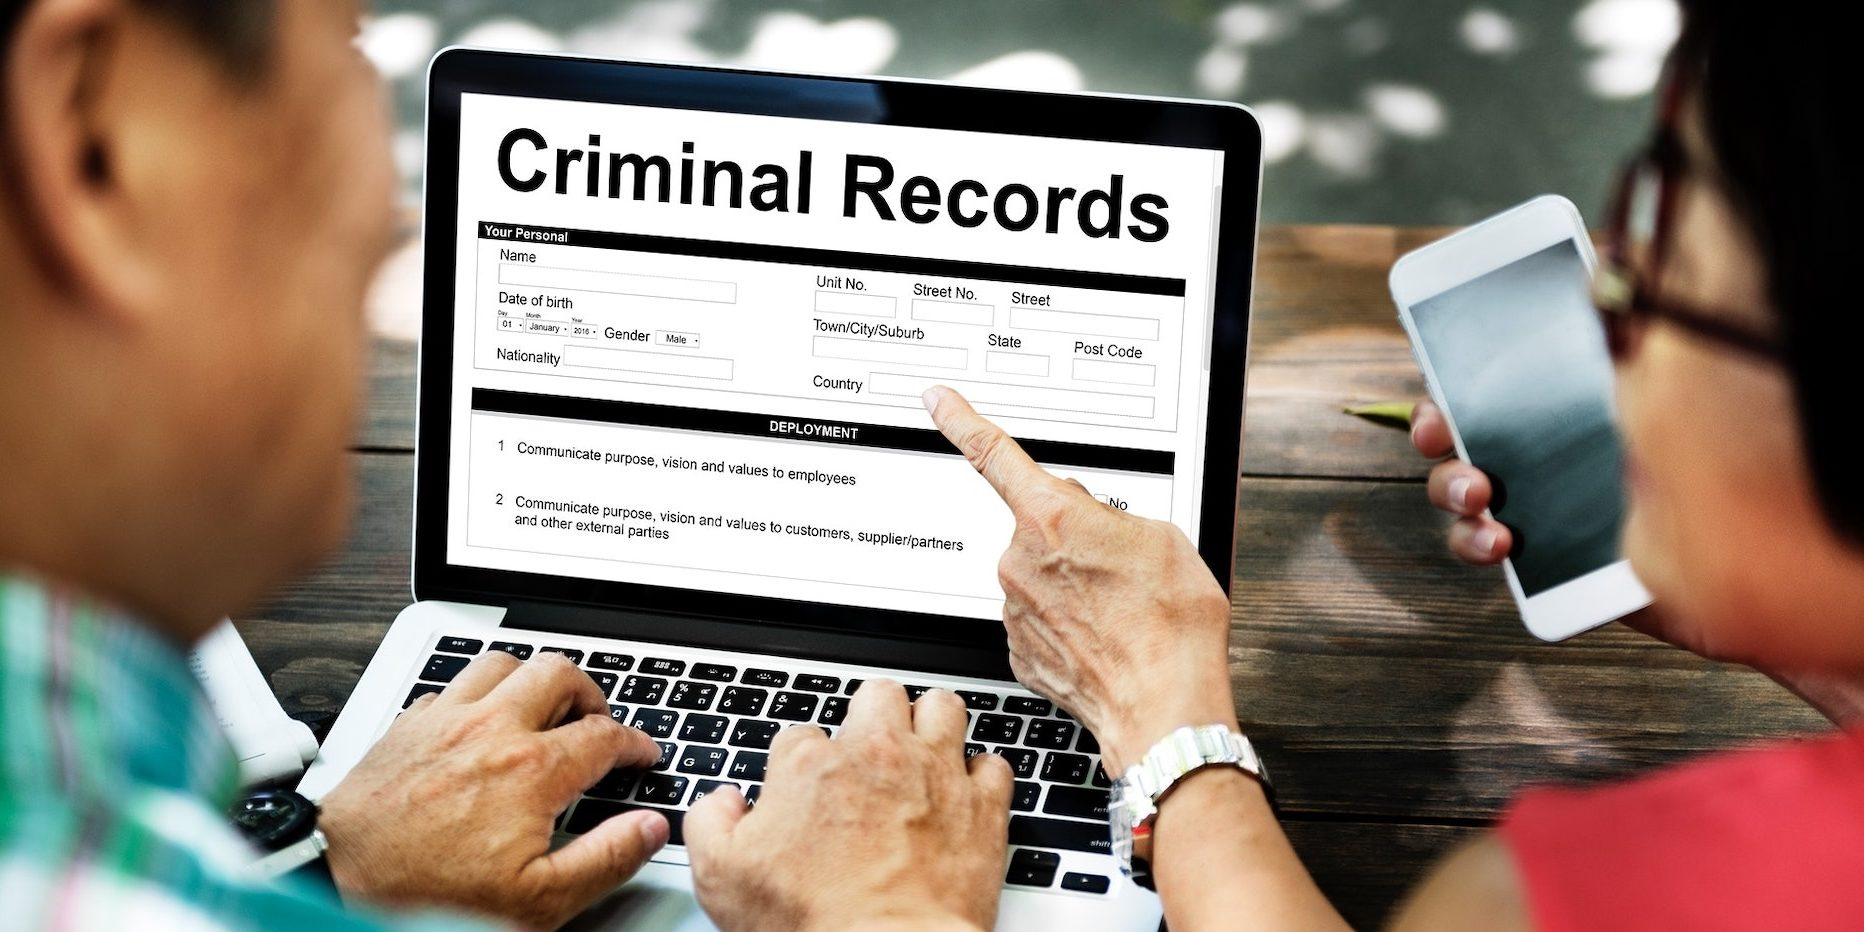 (2) Criminal history record information and intelligence/investigative and treatment information